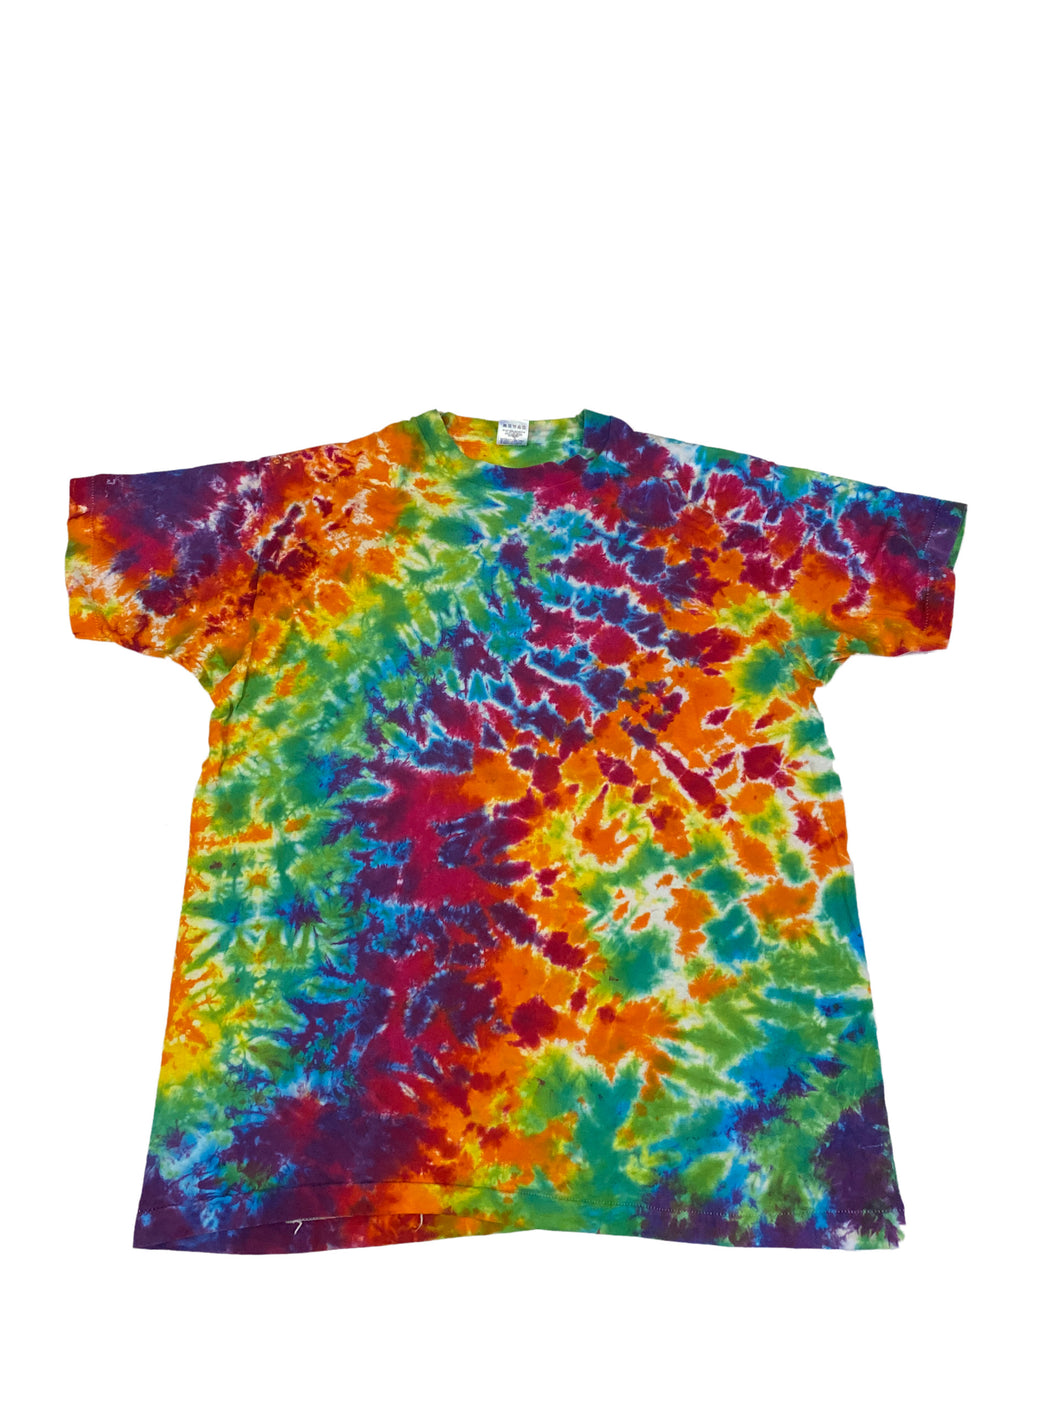 Fruit of the Loom Tie Dye Tee